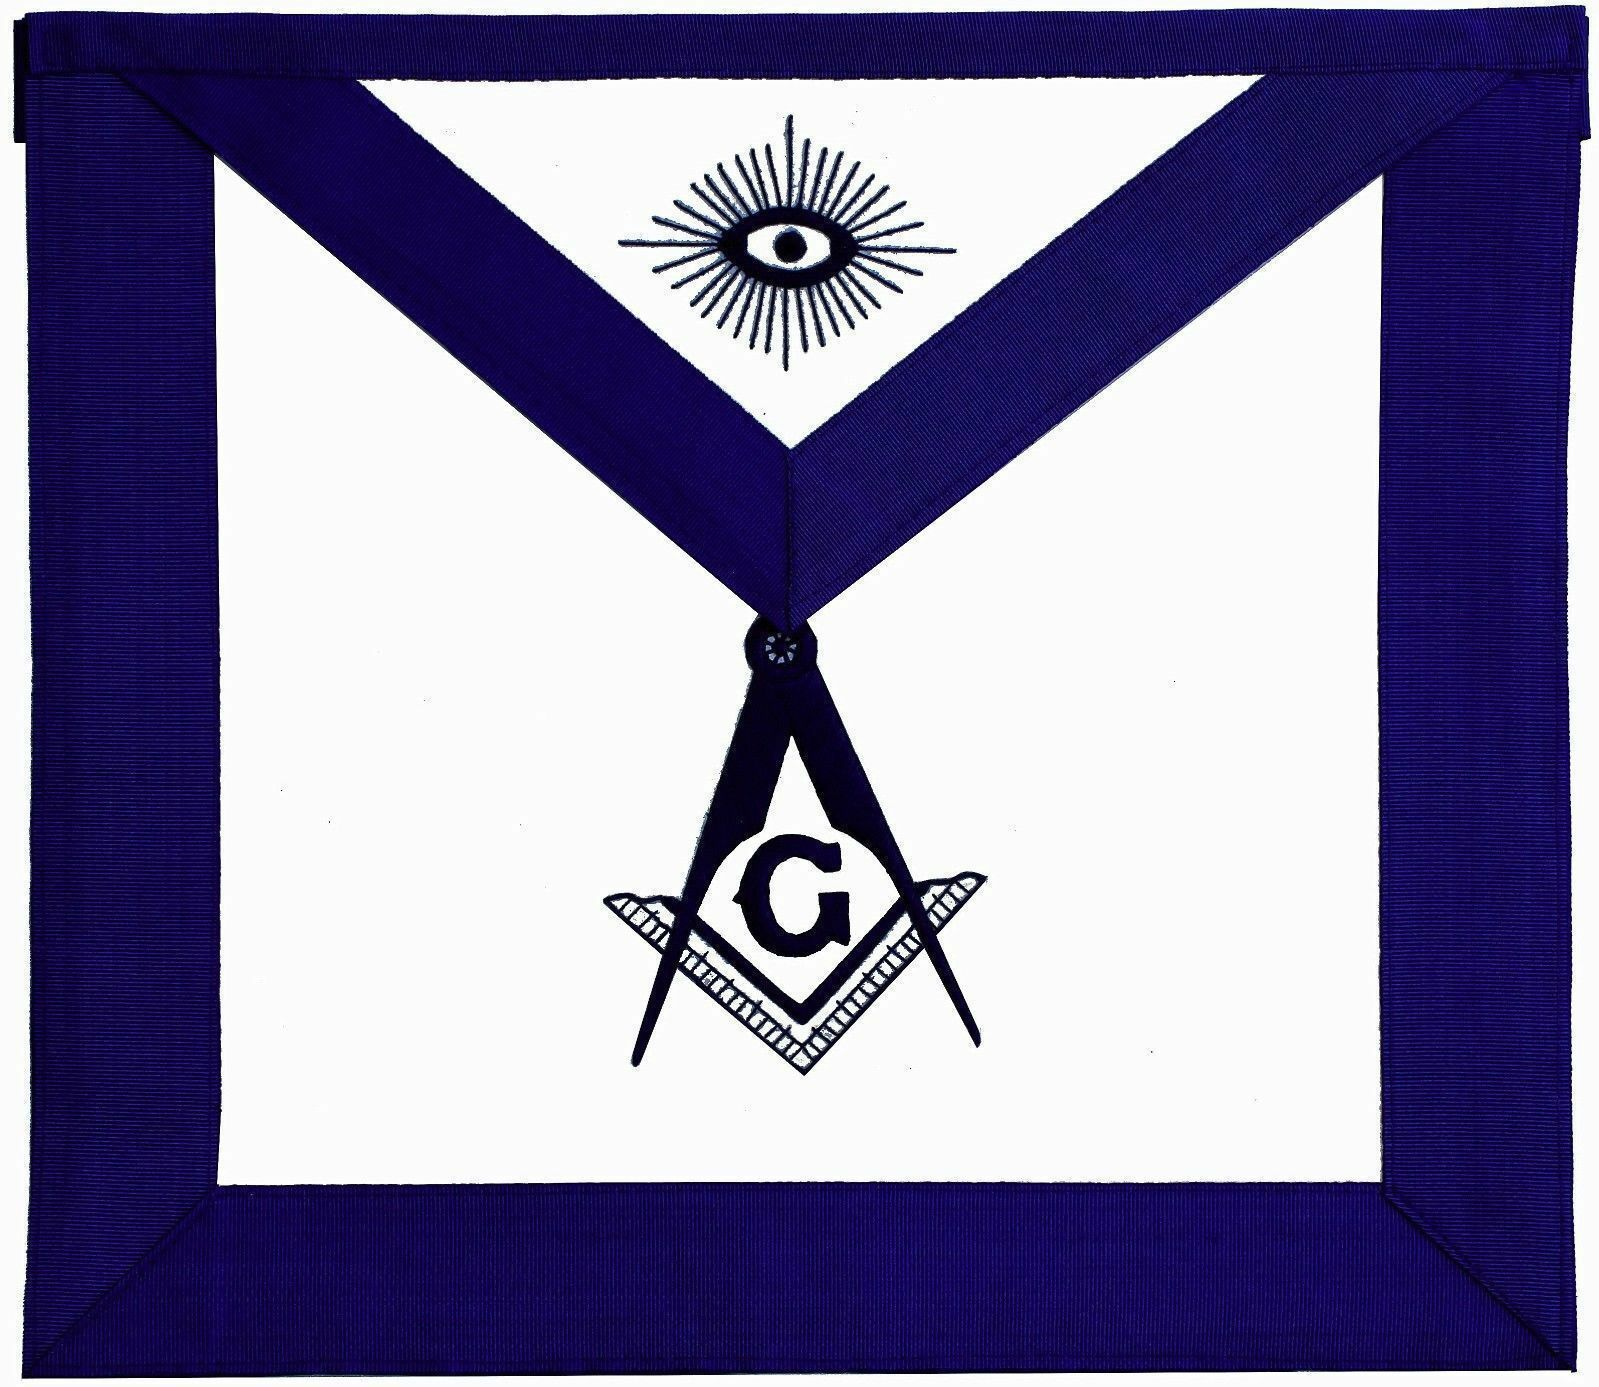 50 Pieces Mason Master Masonic Apron Design White Leather Cabin Blue Embroidery Masonic Sign Great Masonic Gift